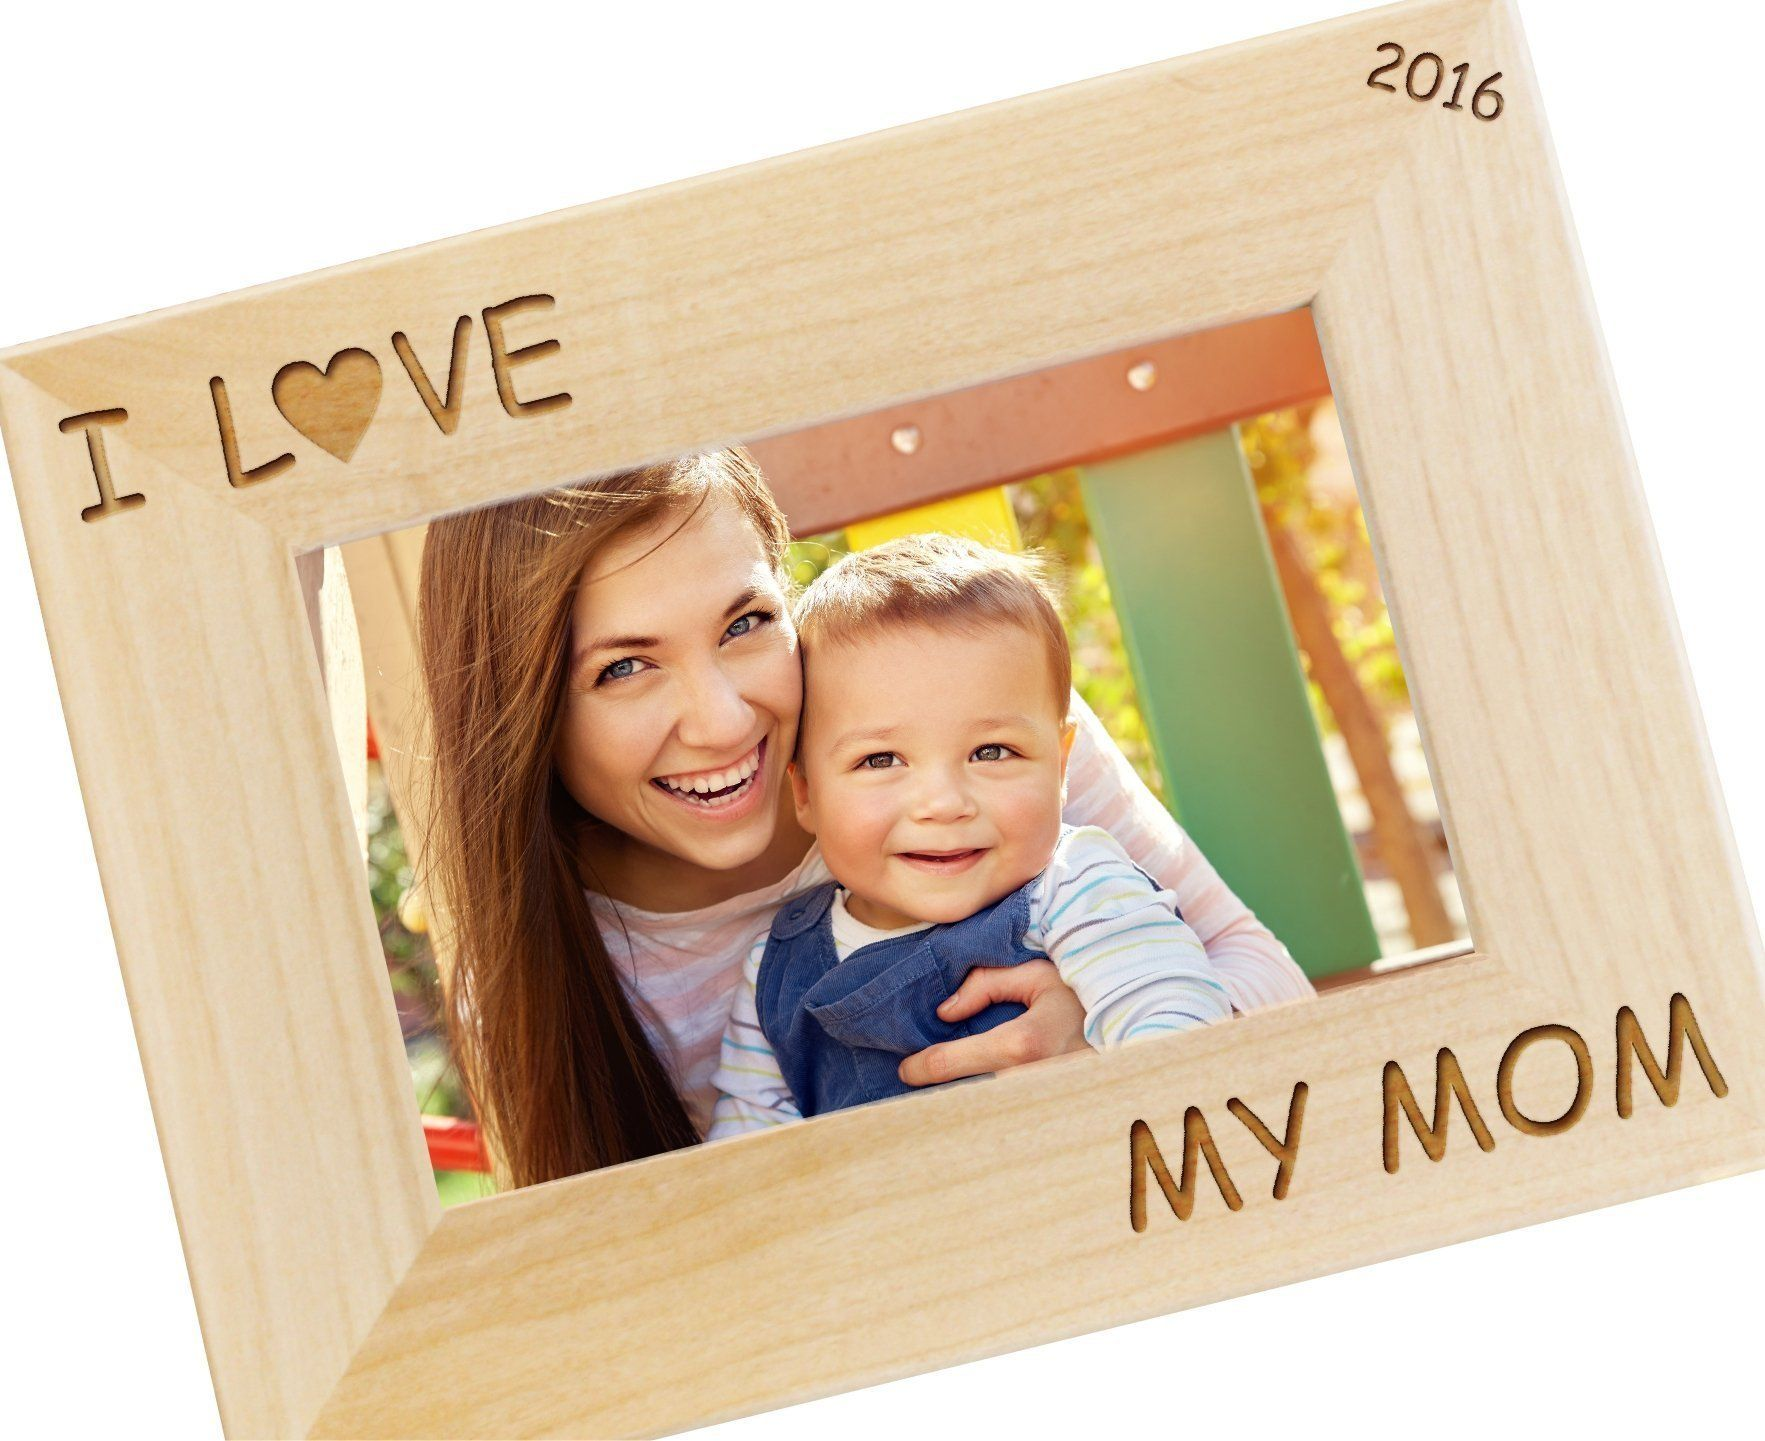 I Love My Mom Personalized Picture Frame - Custom Engraved Photo ...